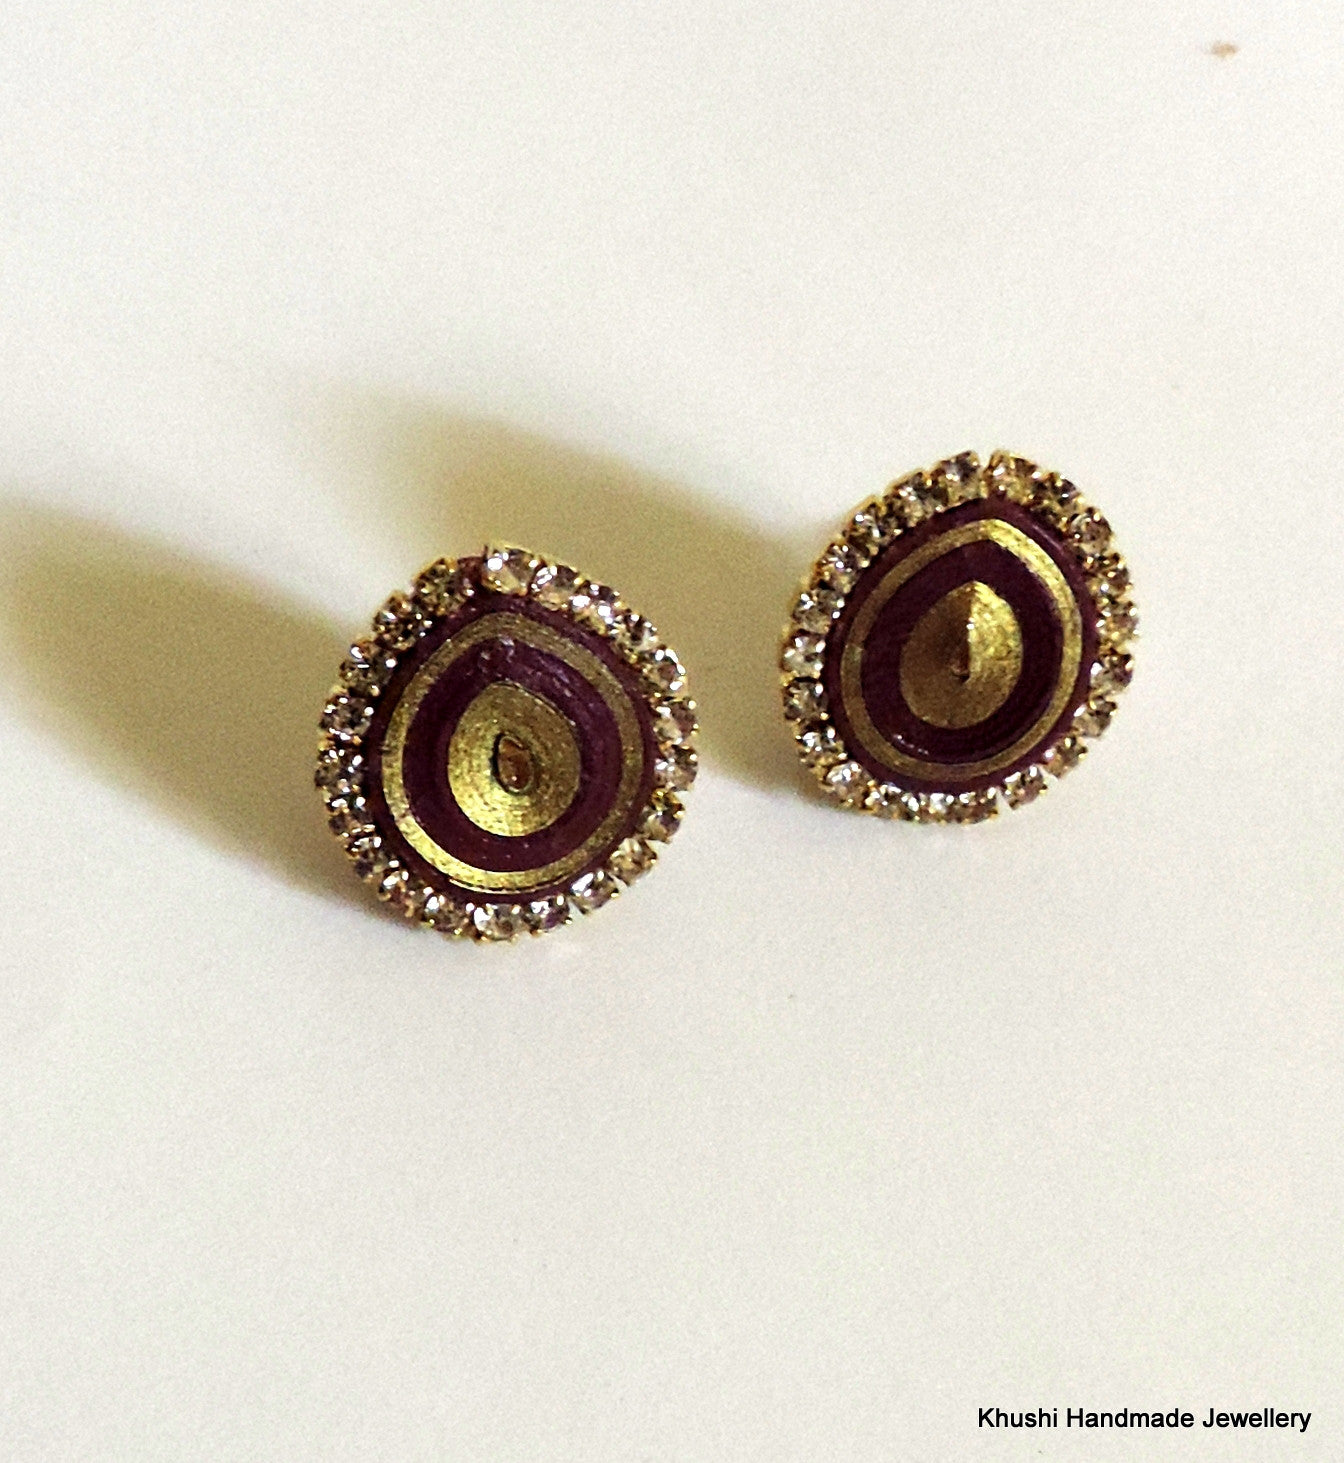 Purple studs with stone lining - Khushi Handmade Jewellery